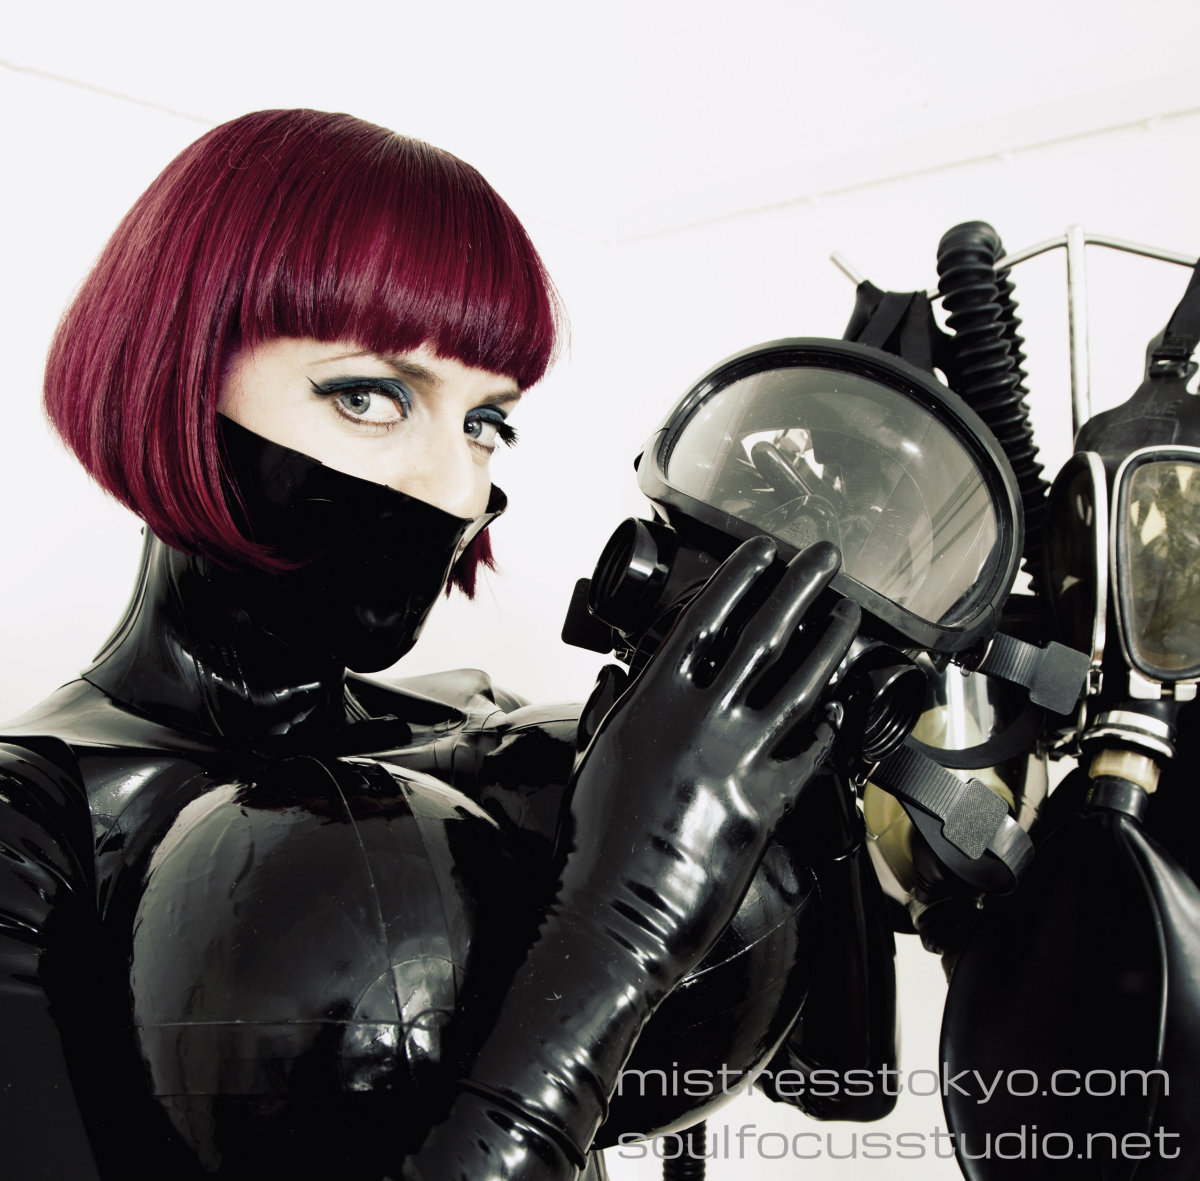 #picoftheday Check My pic by Soul Focus Studio! I'm wearing latex made by Me with My huge megagboobs, with some of My favourite gas masks!  #mistresstokyo #soulfocusstudio #sydneymistress #rubbermistress #dominatrix #fetishboots #australianmistress #latex